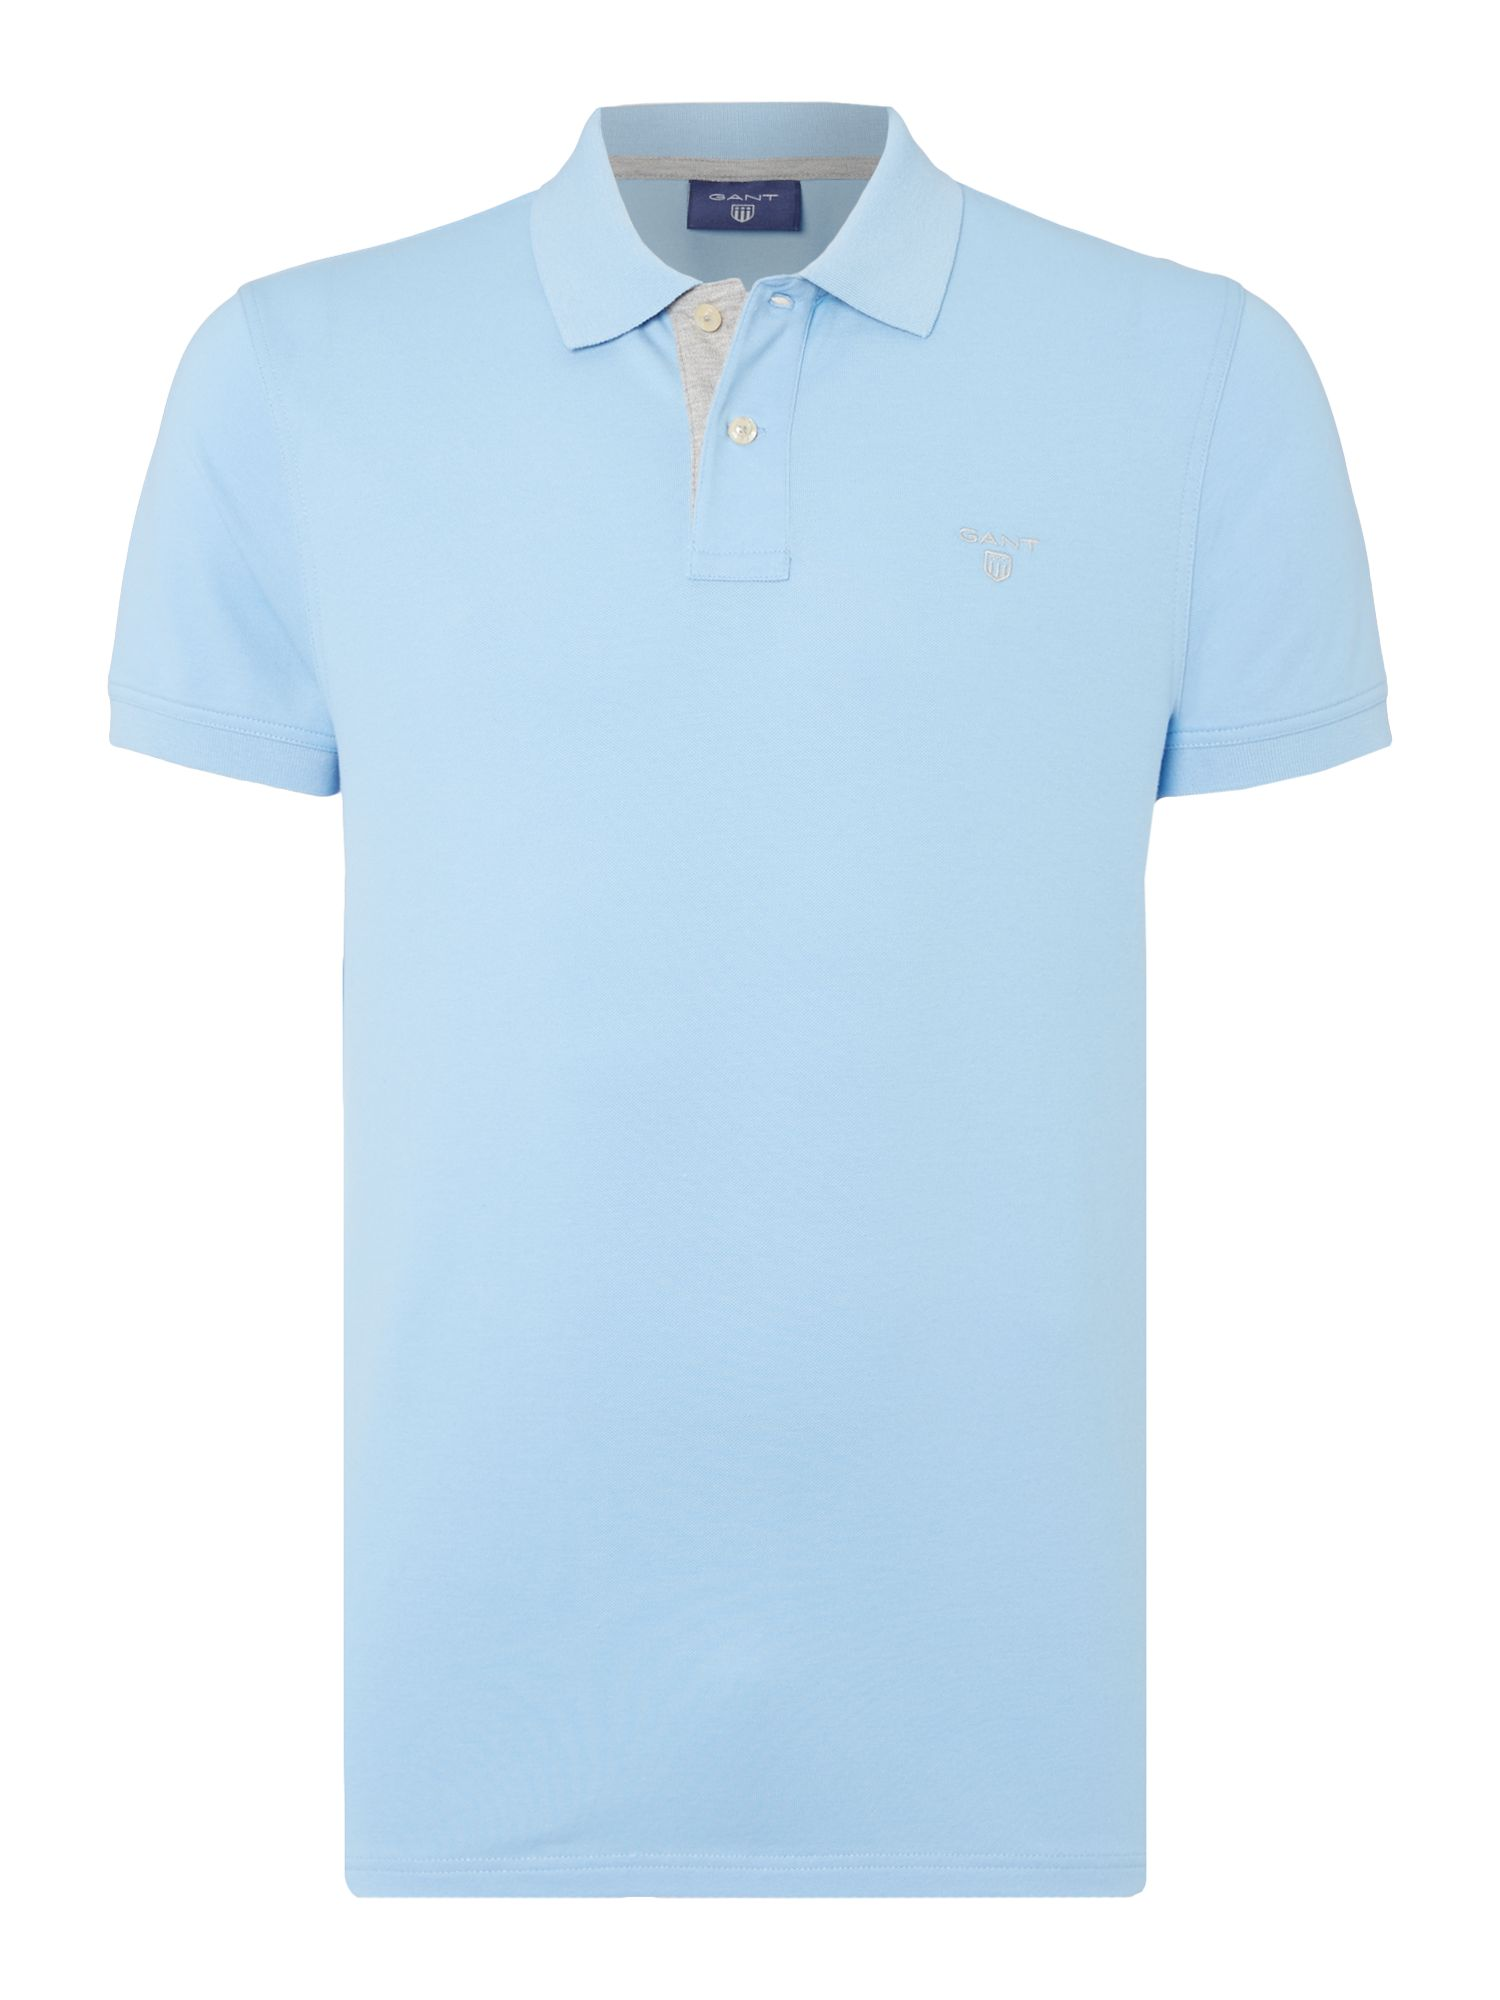 Men's Gant Contrast Collar Polo Shirt, Sky